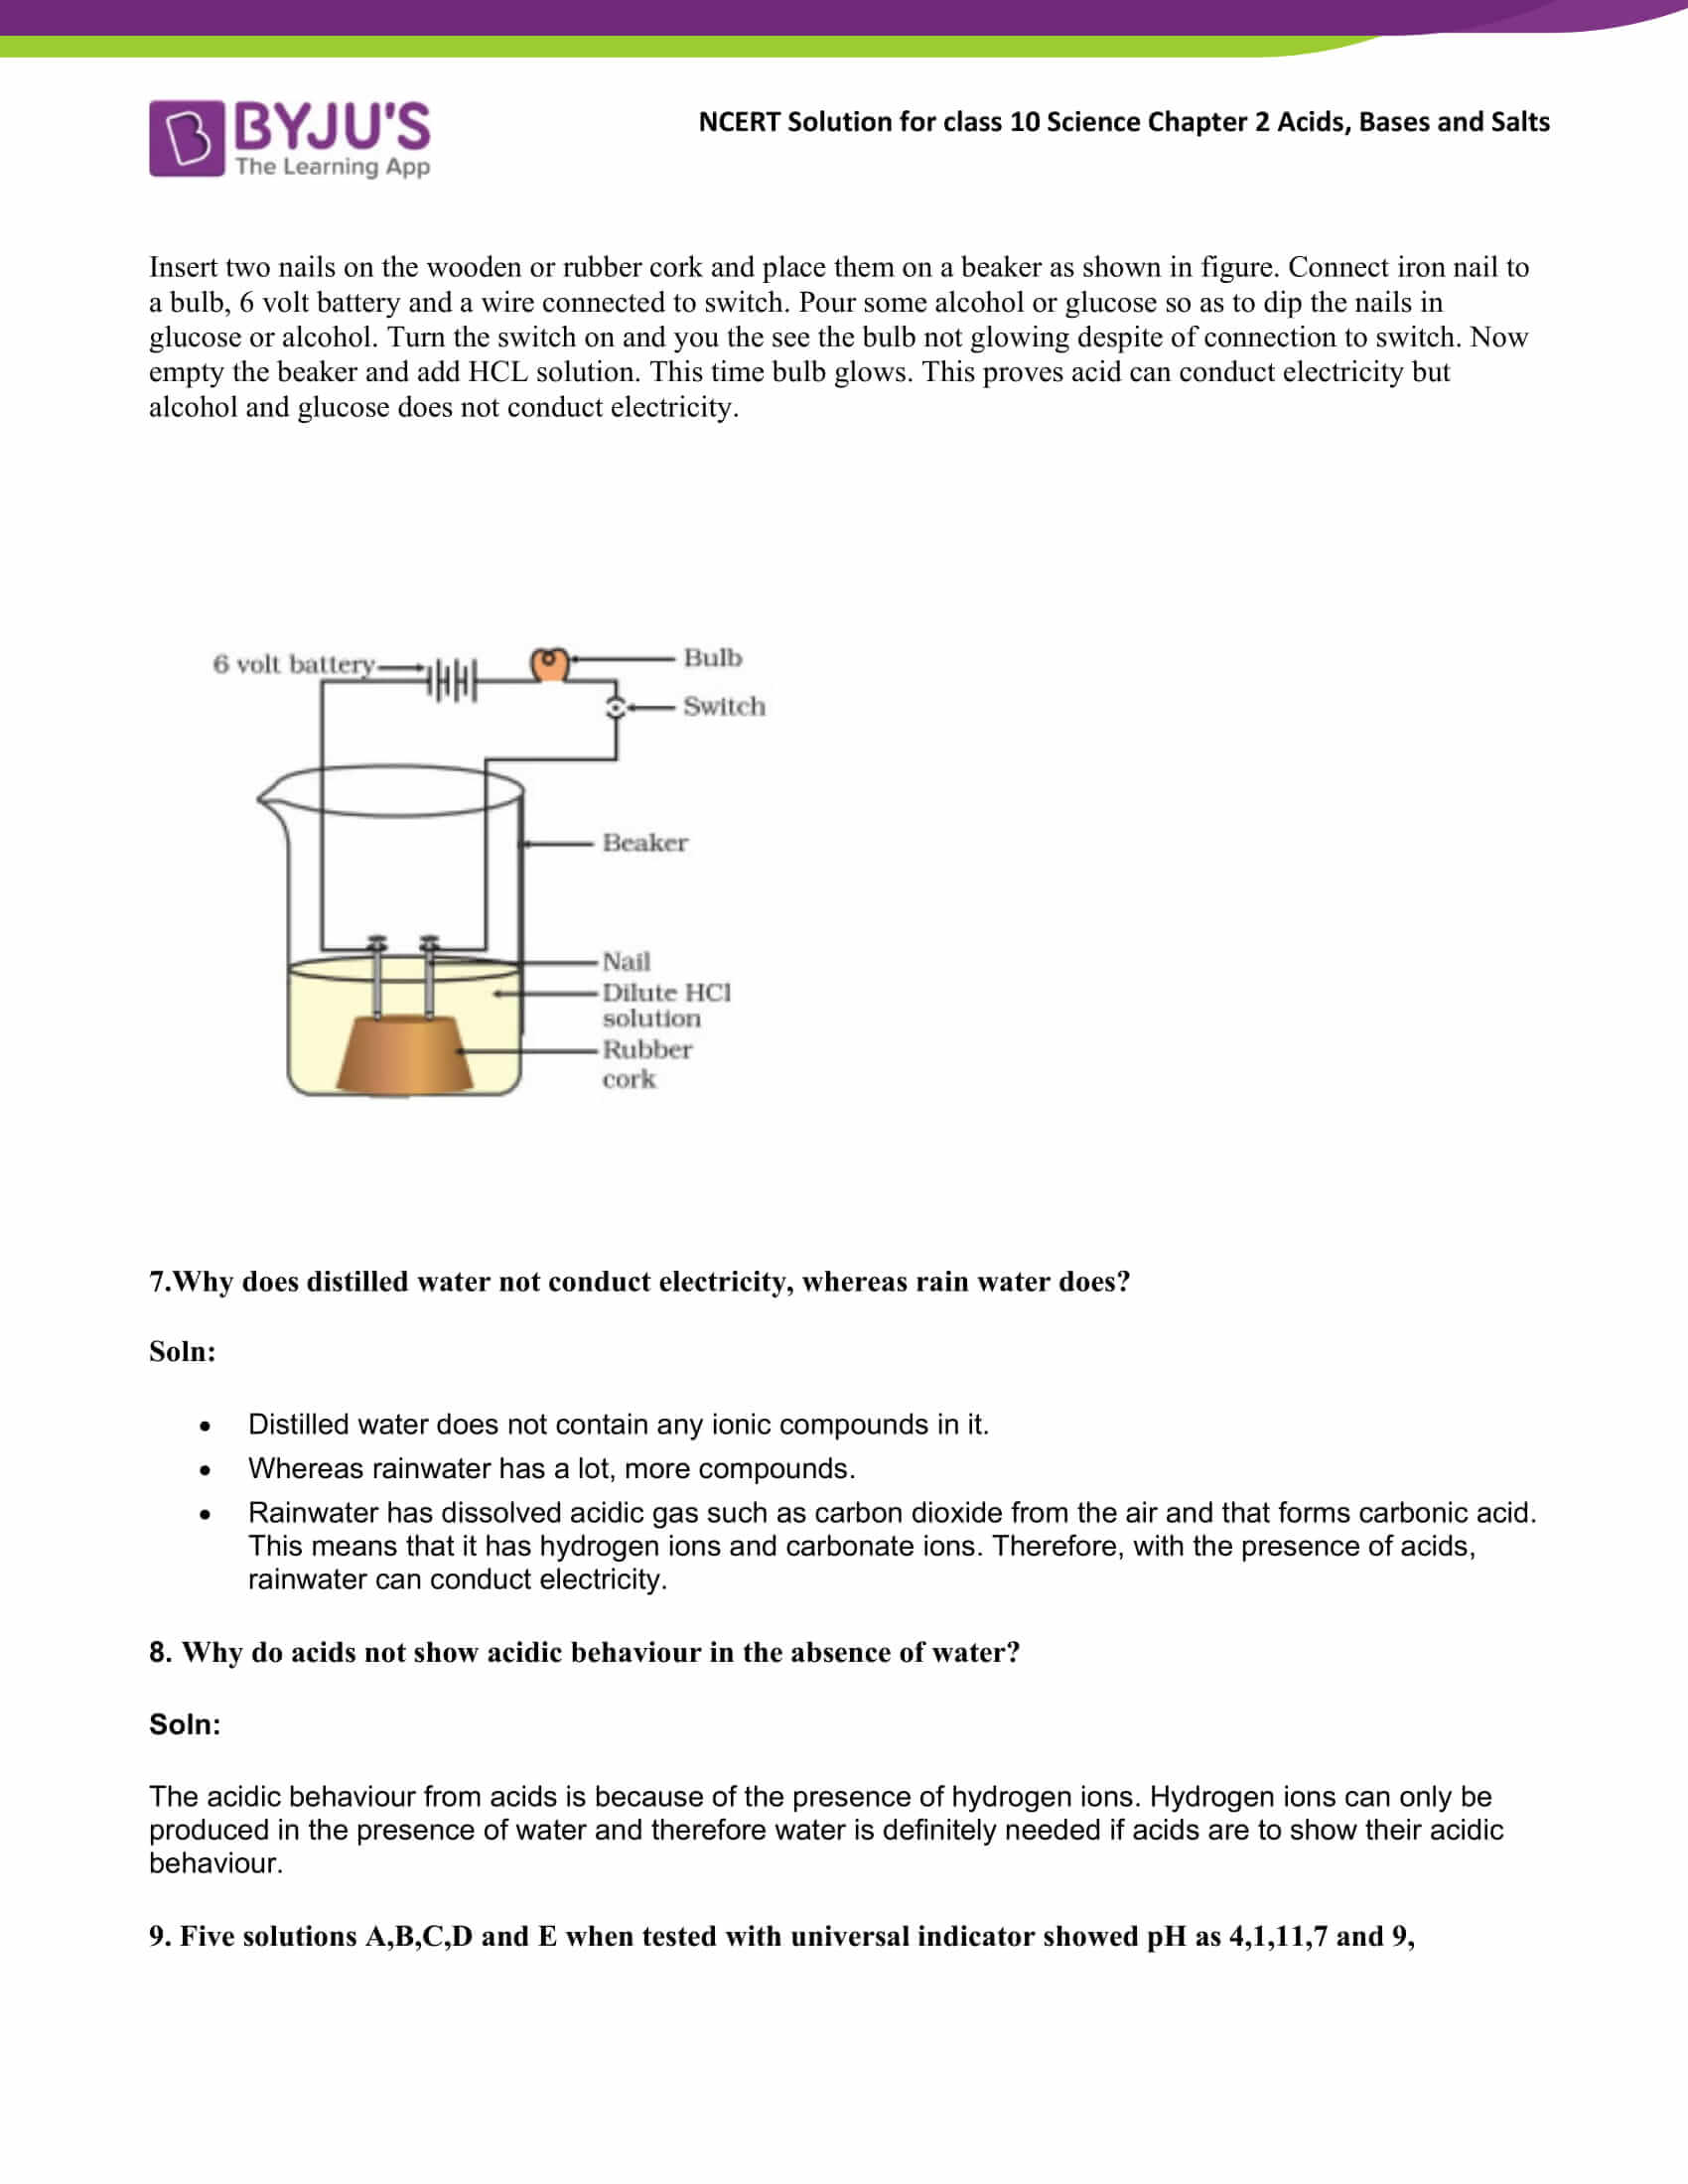 NCERT Solutions Class 10 Science Chapter 2 Acid Bases and ...